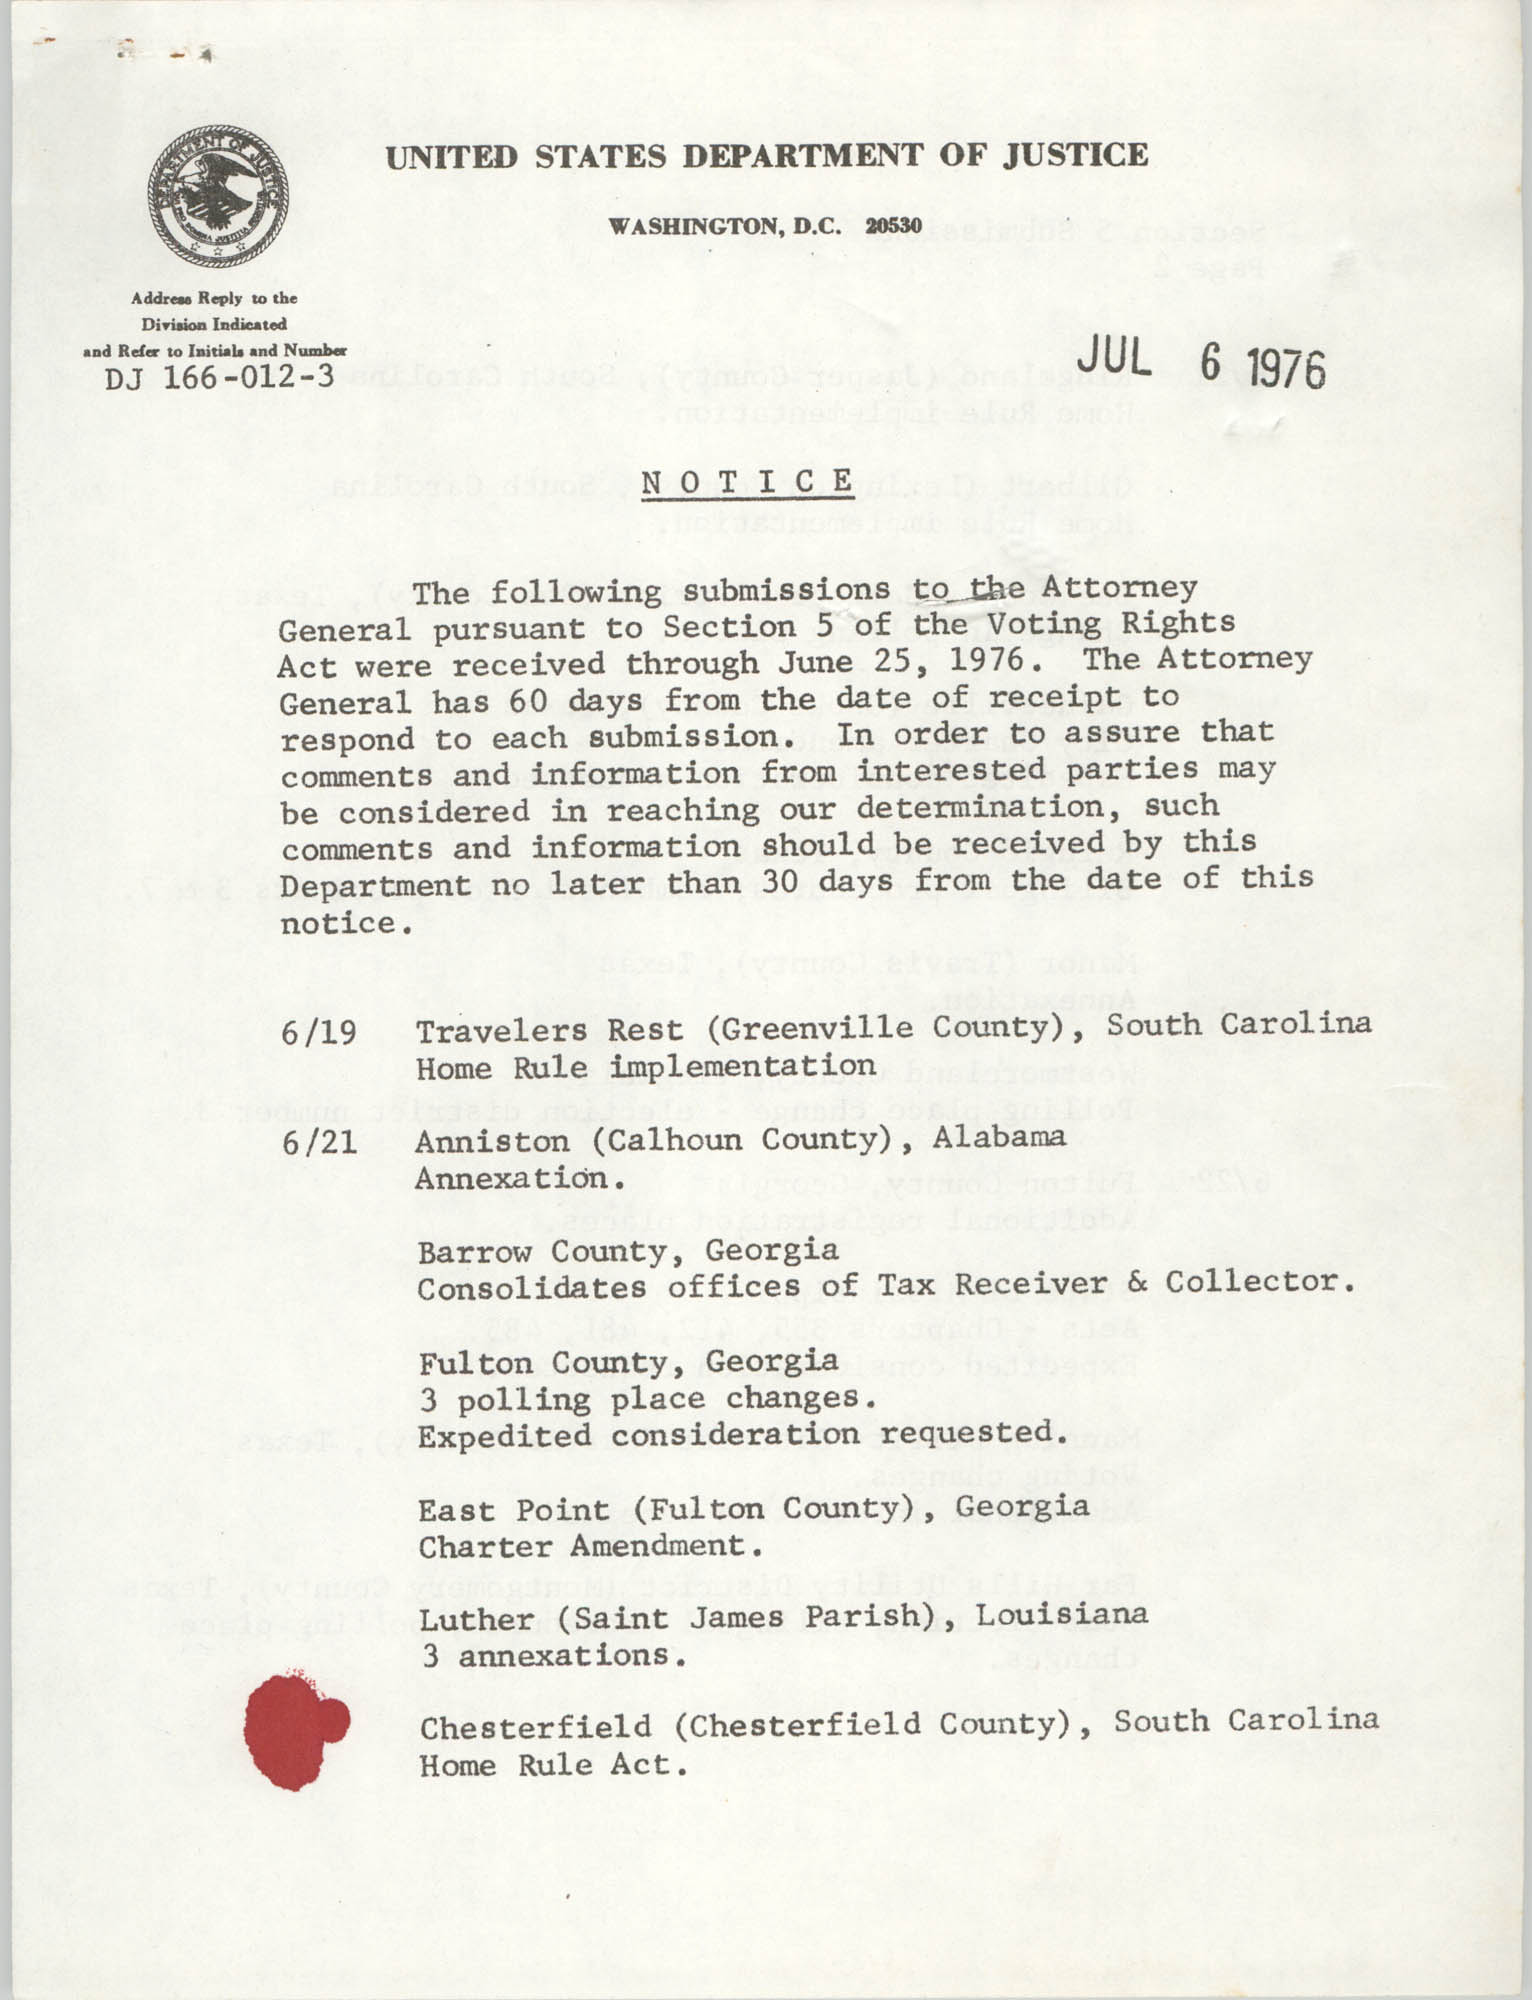 United States Department of Justice Notice, July 6, 1976